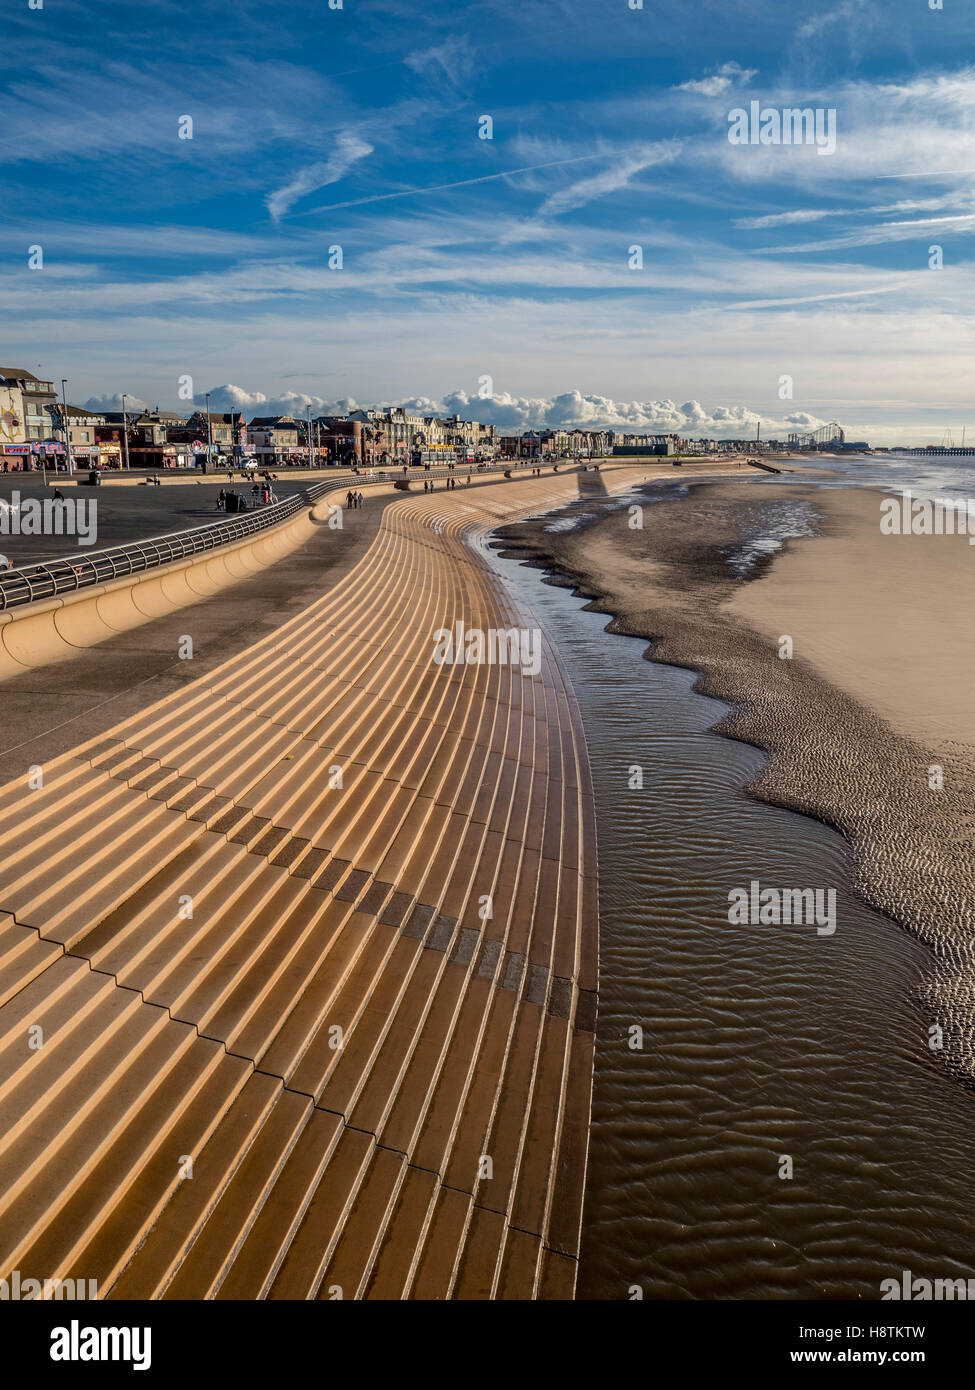 Blackpool seafront with curved stone steps down to beach, Lancashire, UK. - Stock Image